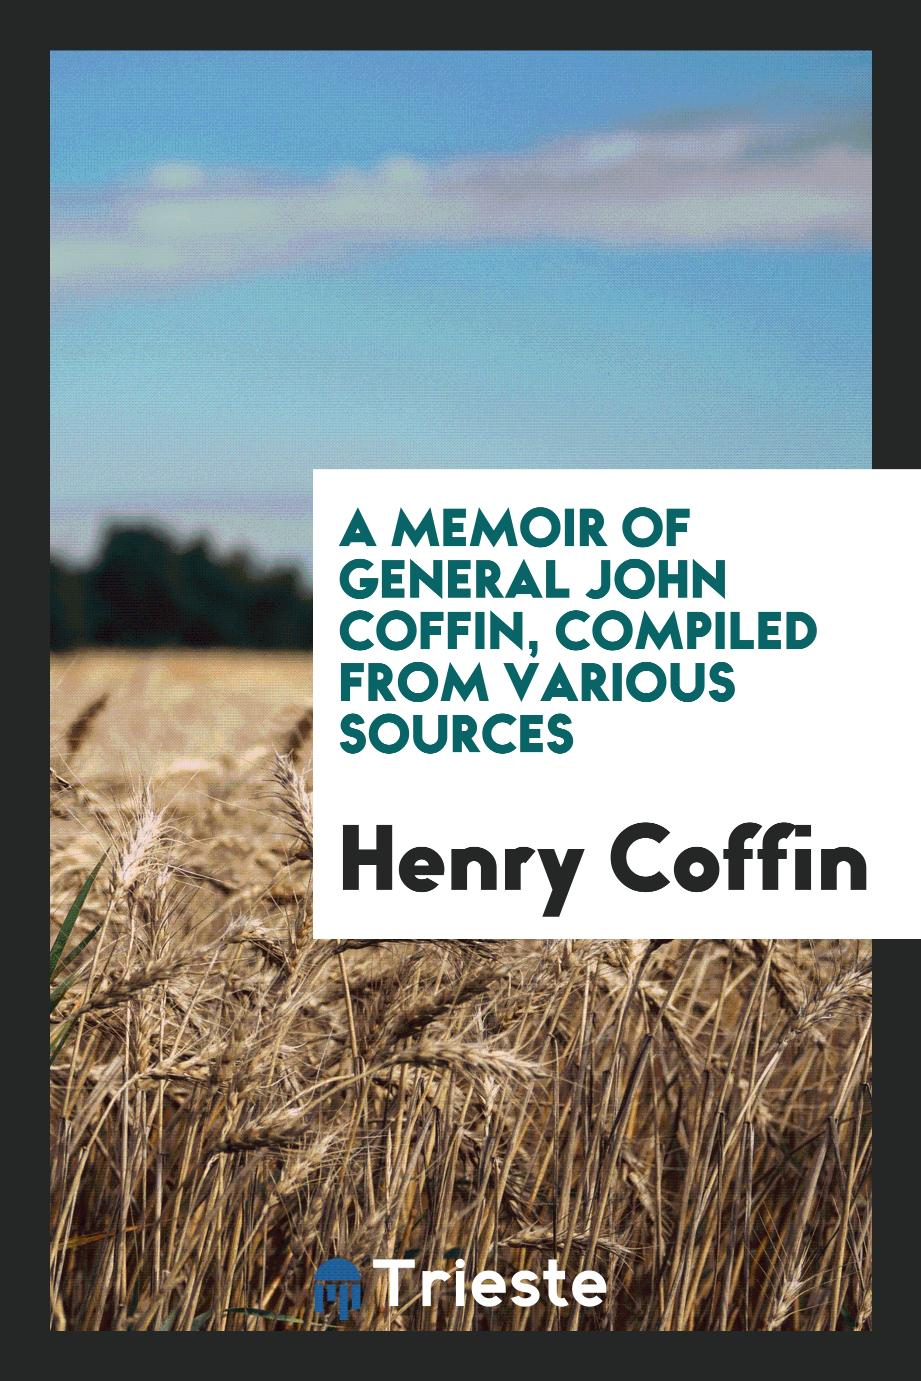 A Memoir of General John Coffin, compiled from various sources